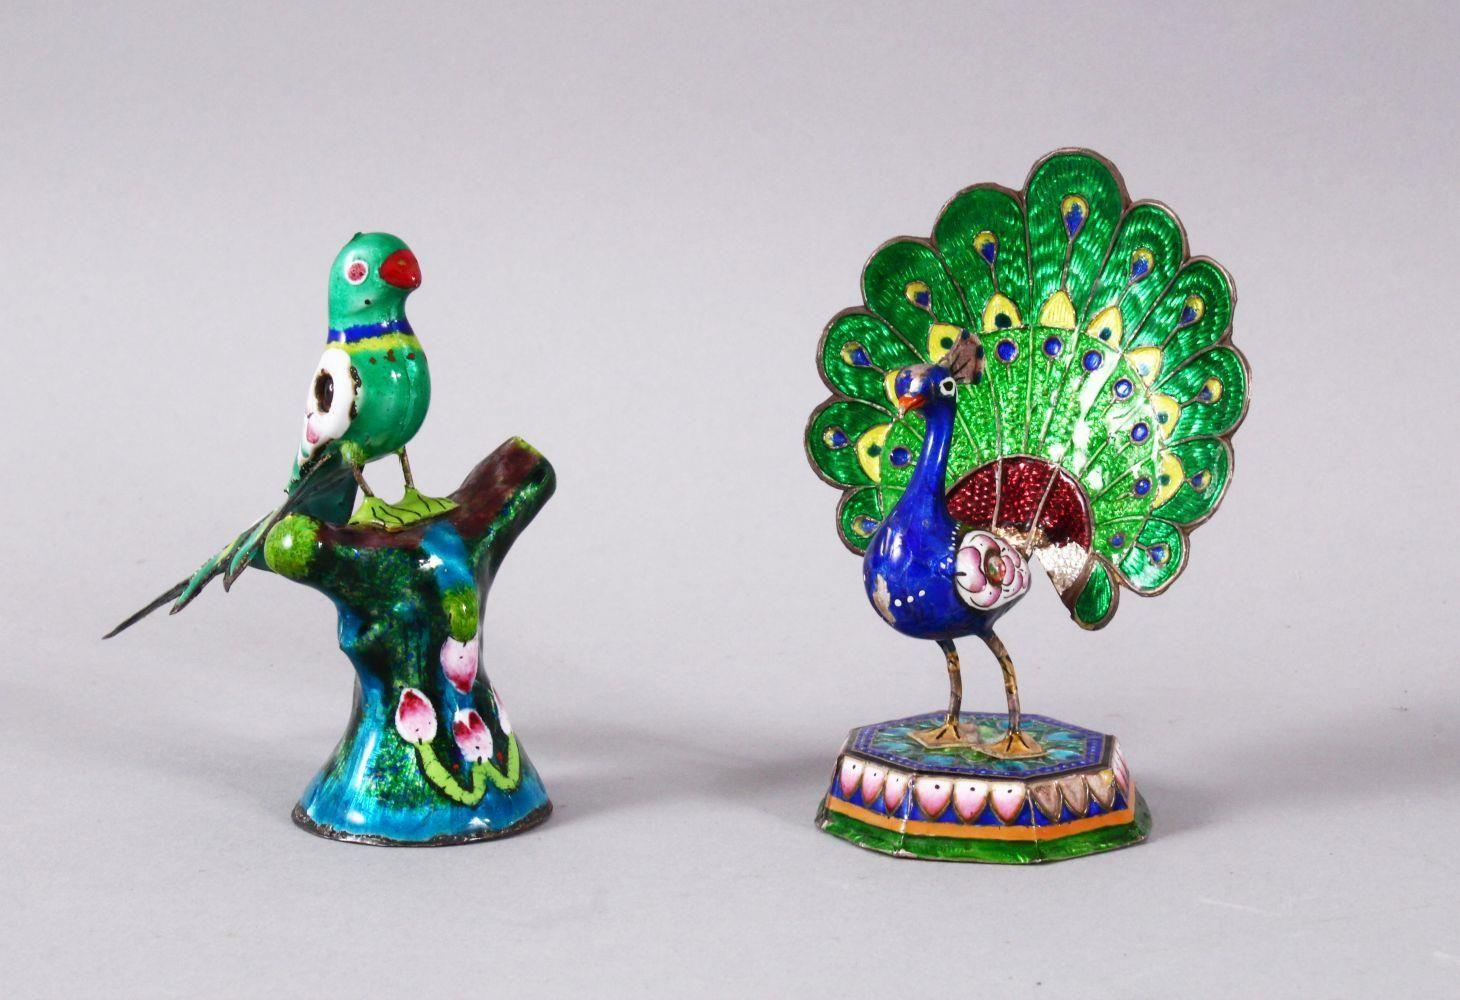 TWO 19TH / 20TH CENTURY INDIAN ENAMEL BIRD FIGURES, one of a peacock, the other of a bird upon